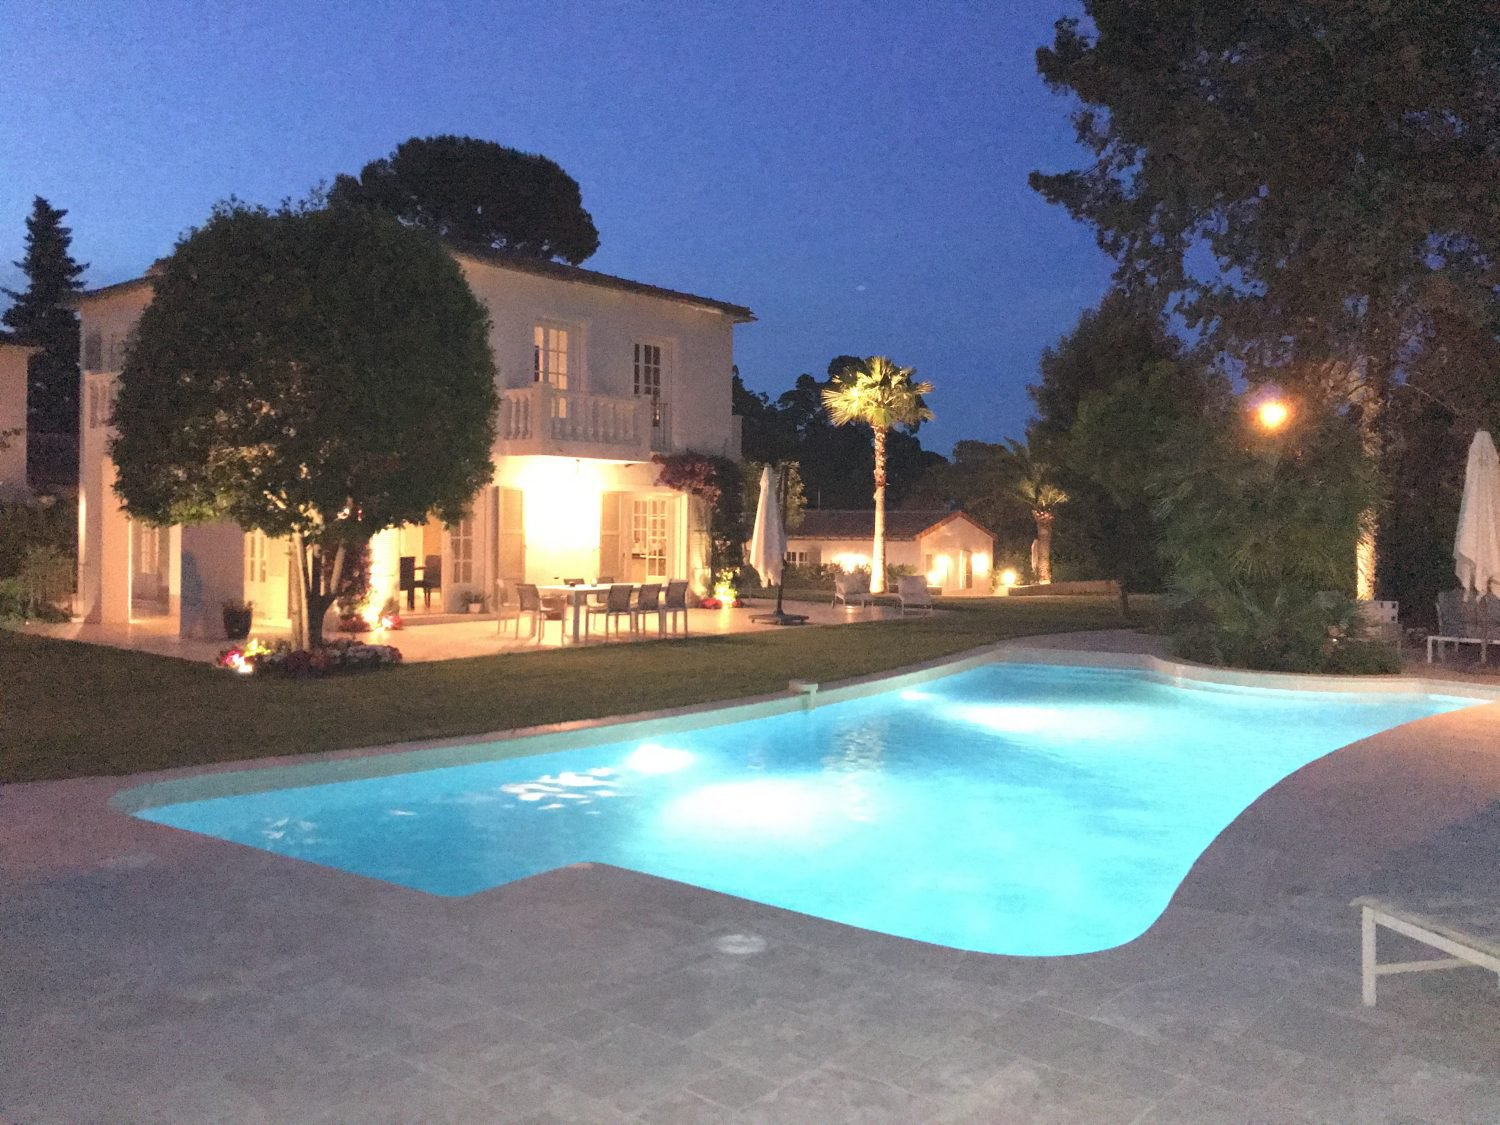 5 Bedroom / 5 Bathroom Villa with pool on the Cap d'Antibes - ID Villa Caroline